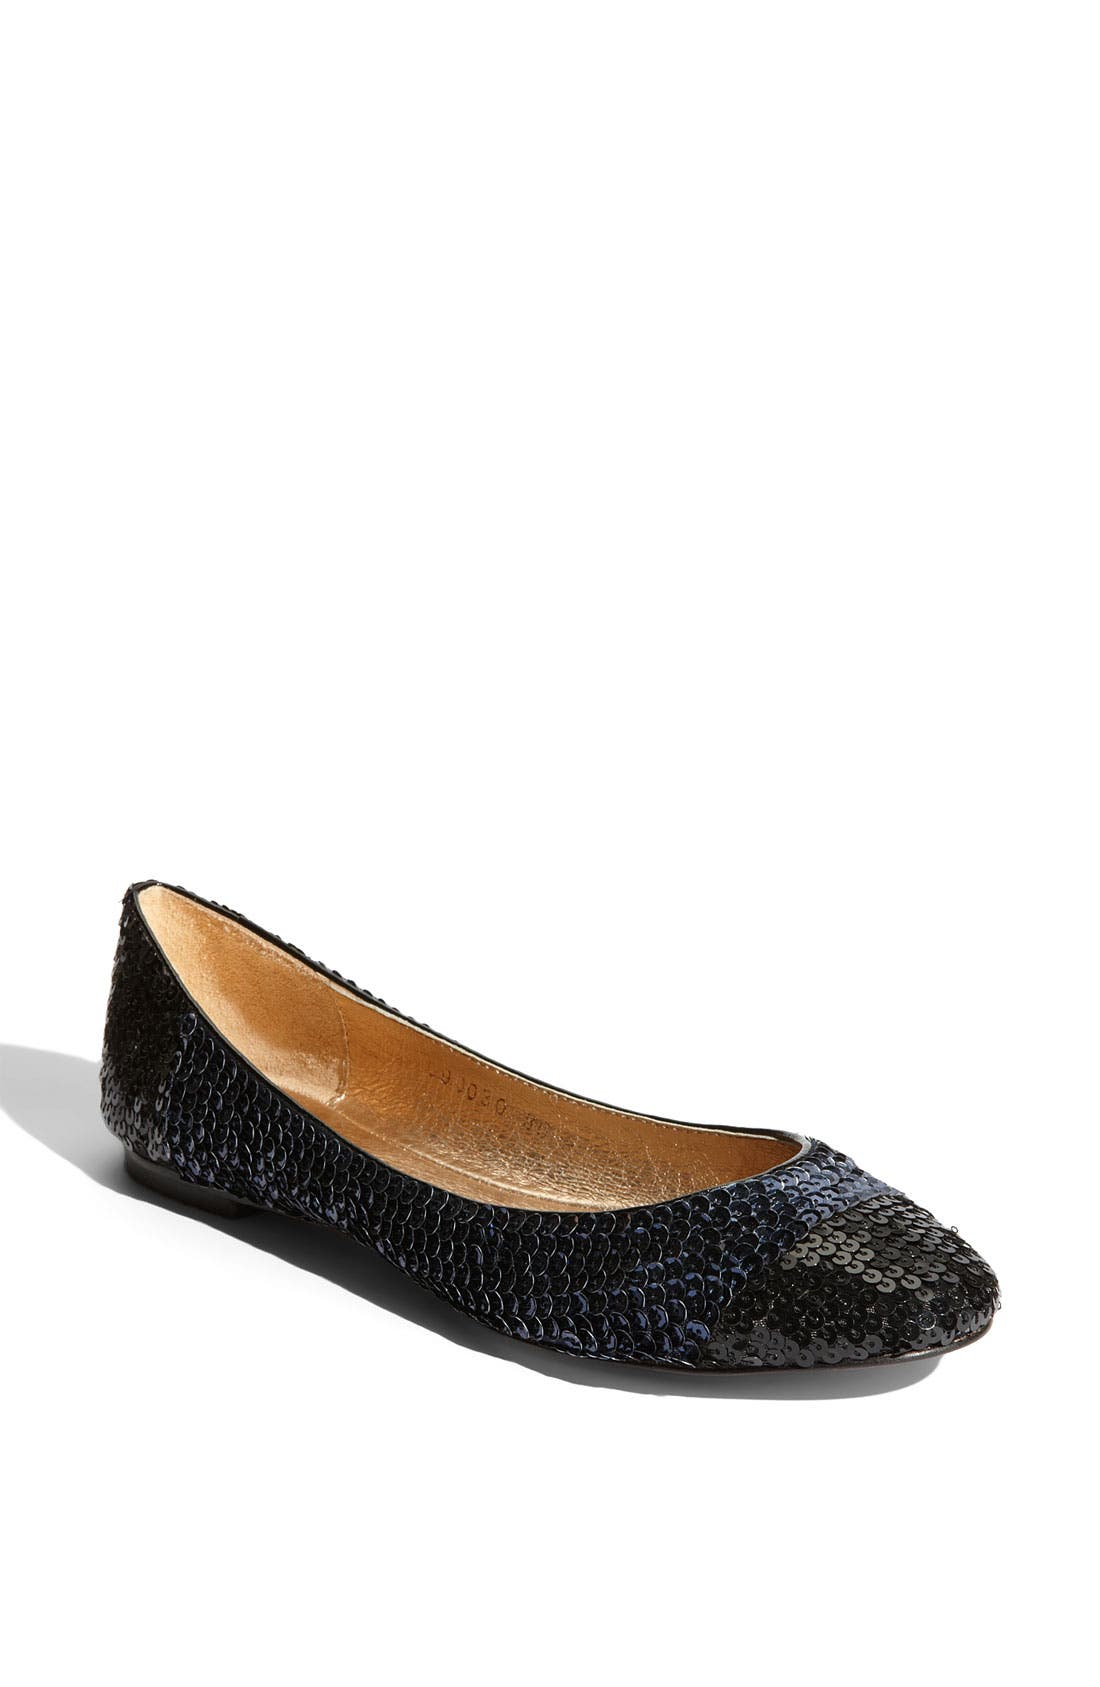 Alternate Image 1 Selected - All Black 'More' Sequin Flat